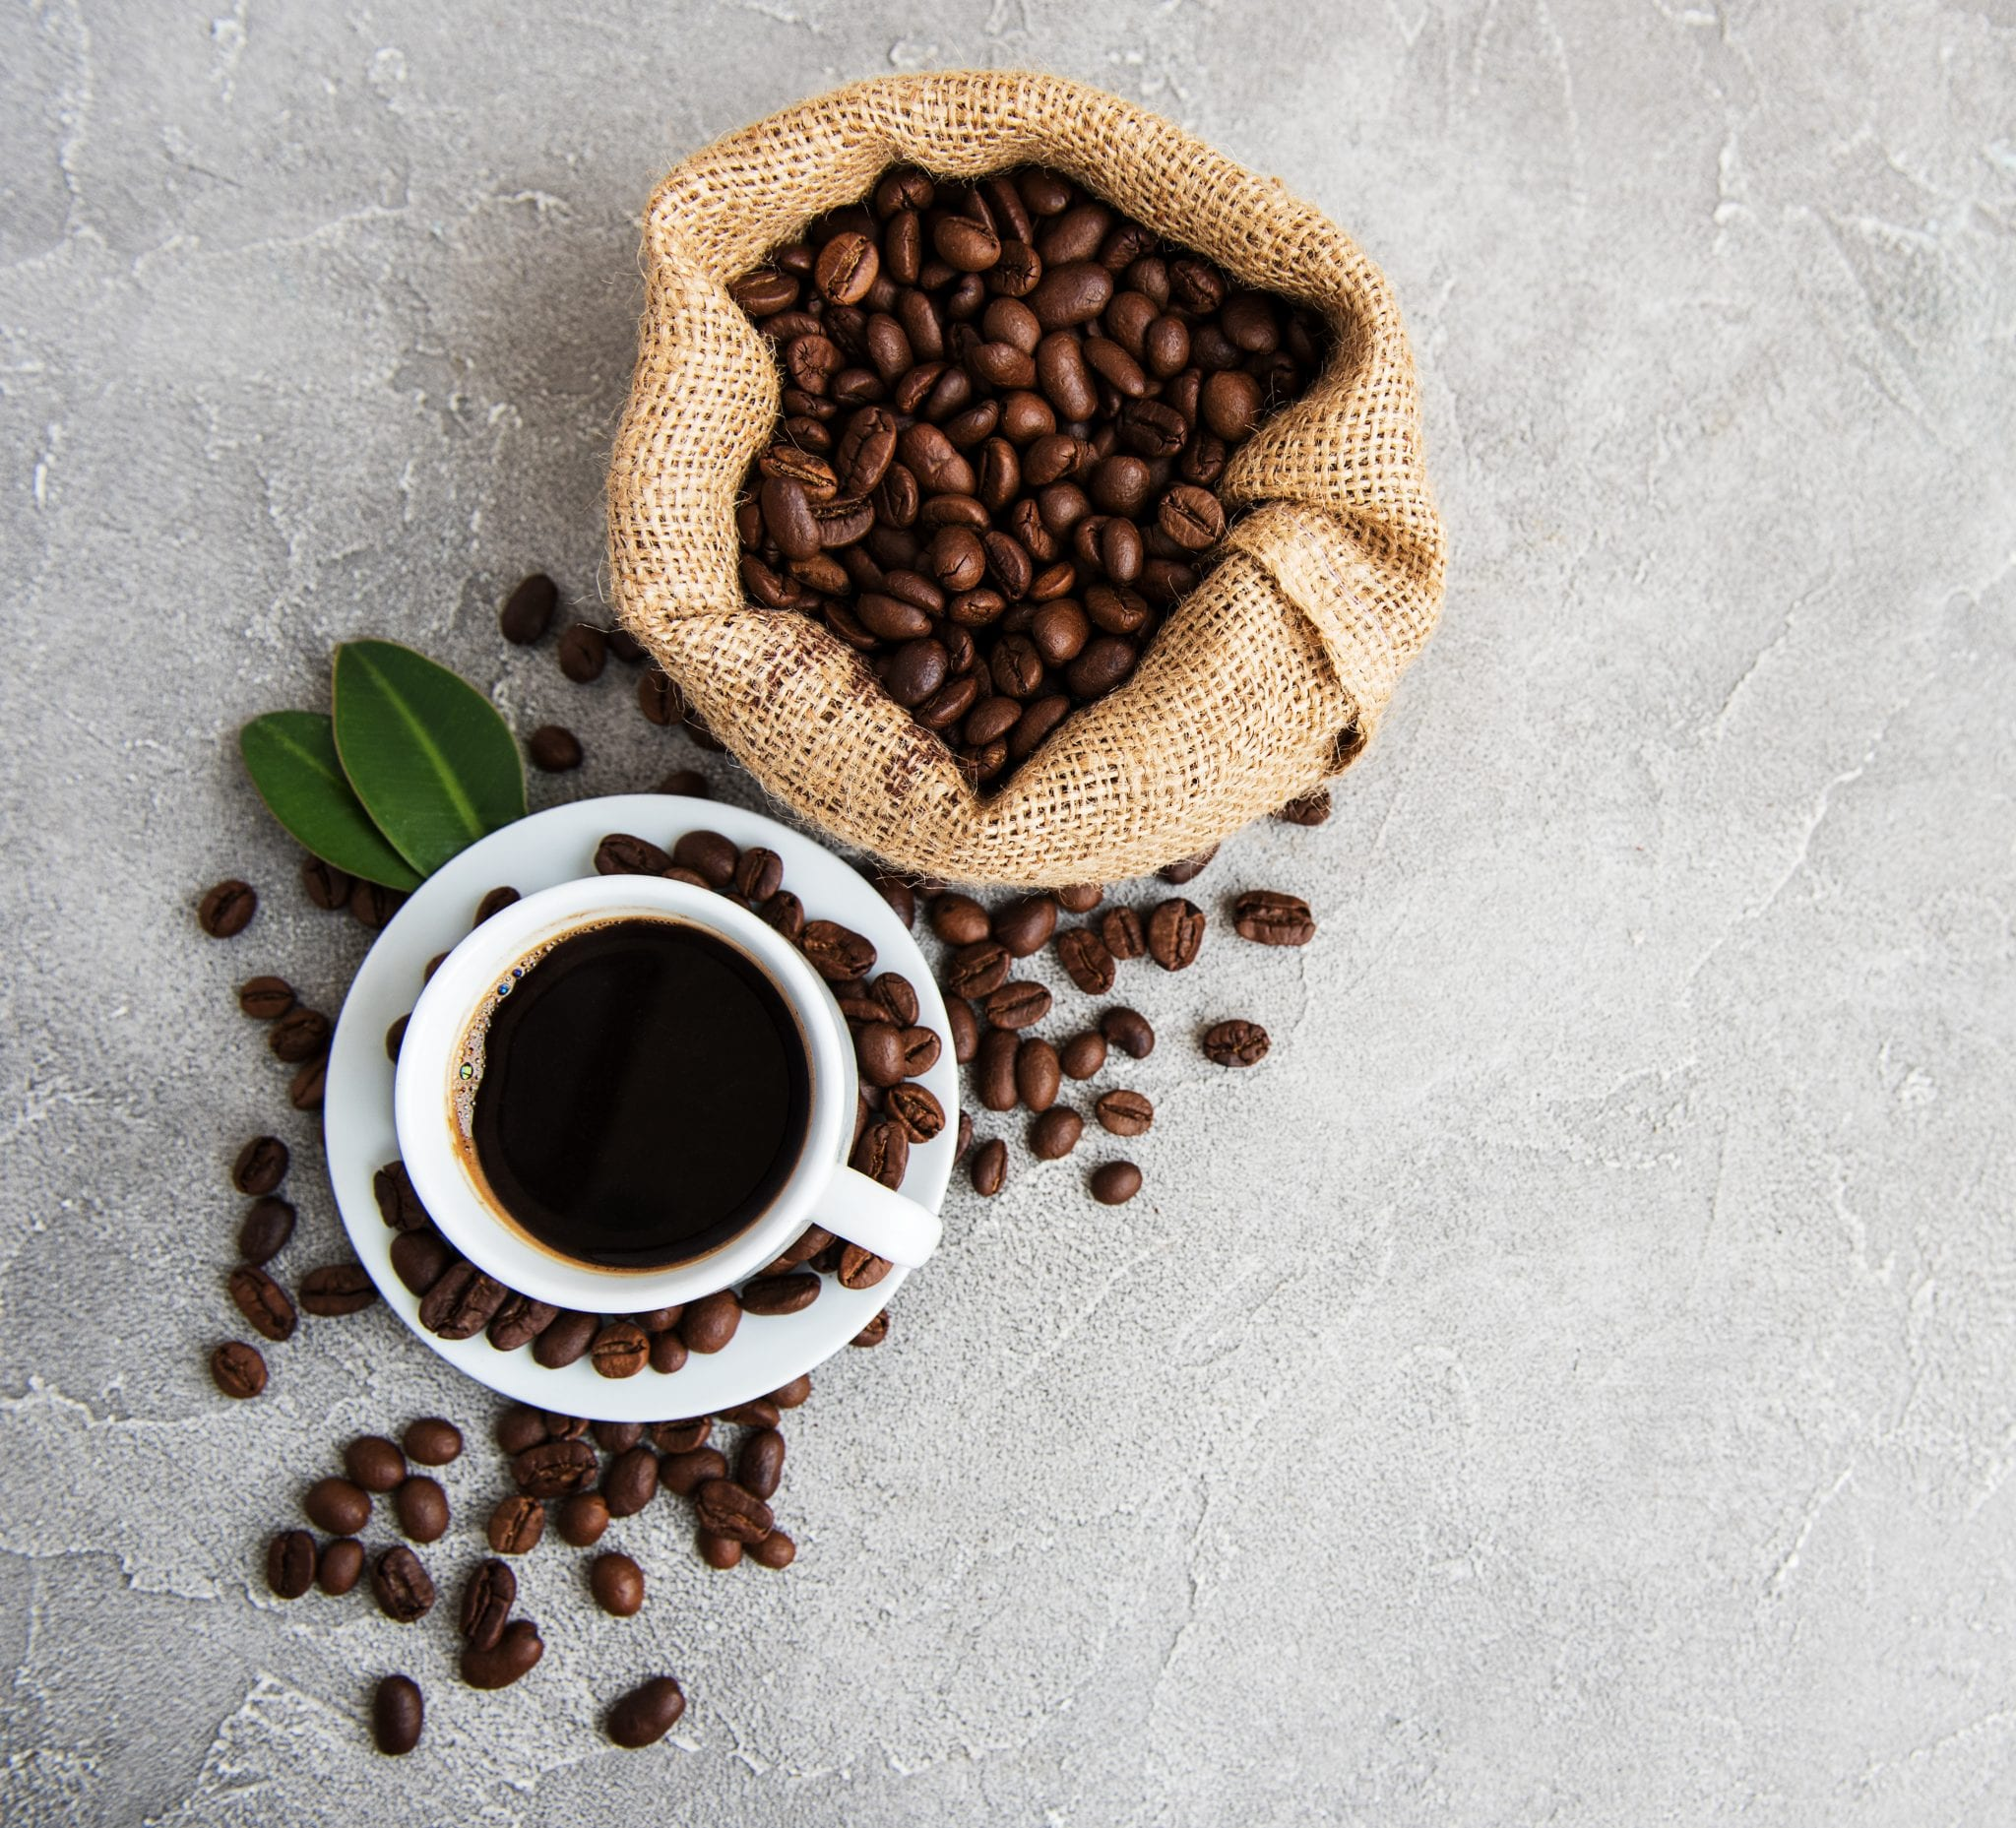 cup of weed coffee laying beside coffee beans.